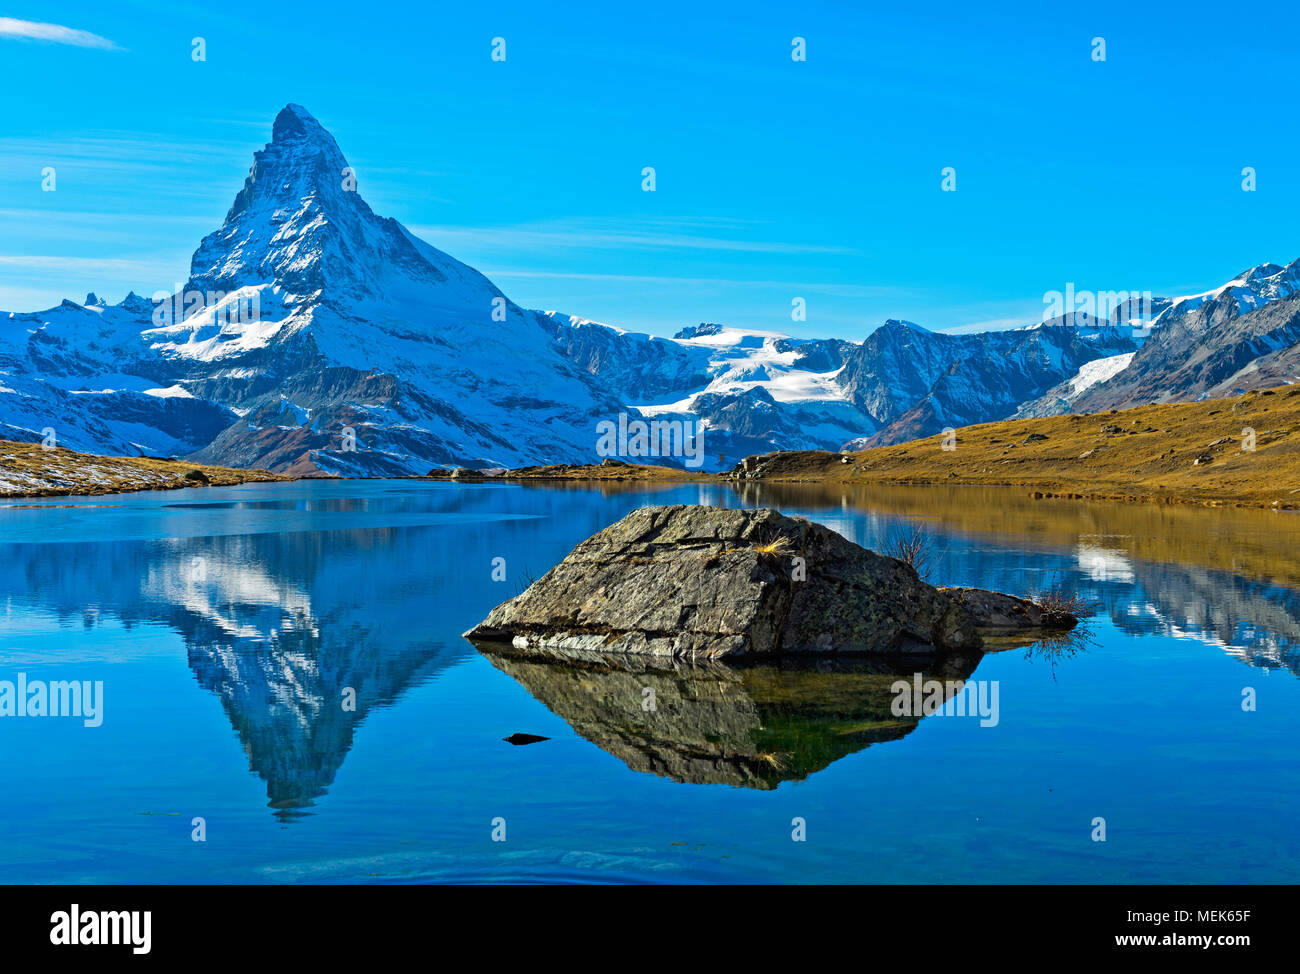 The Matterhorn, Mont Cervin, is reflected in lake Stellisee, Zermatt, Valais, Switzerland - Stock Image